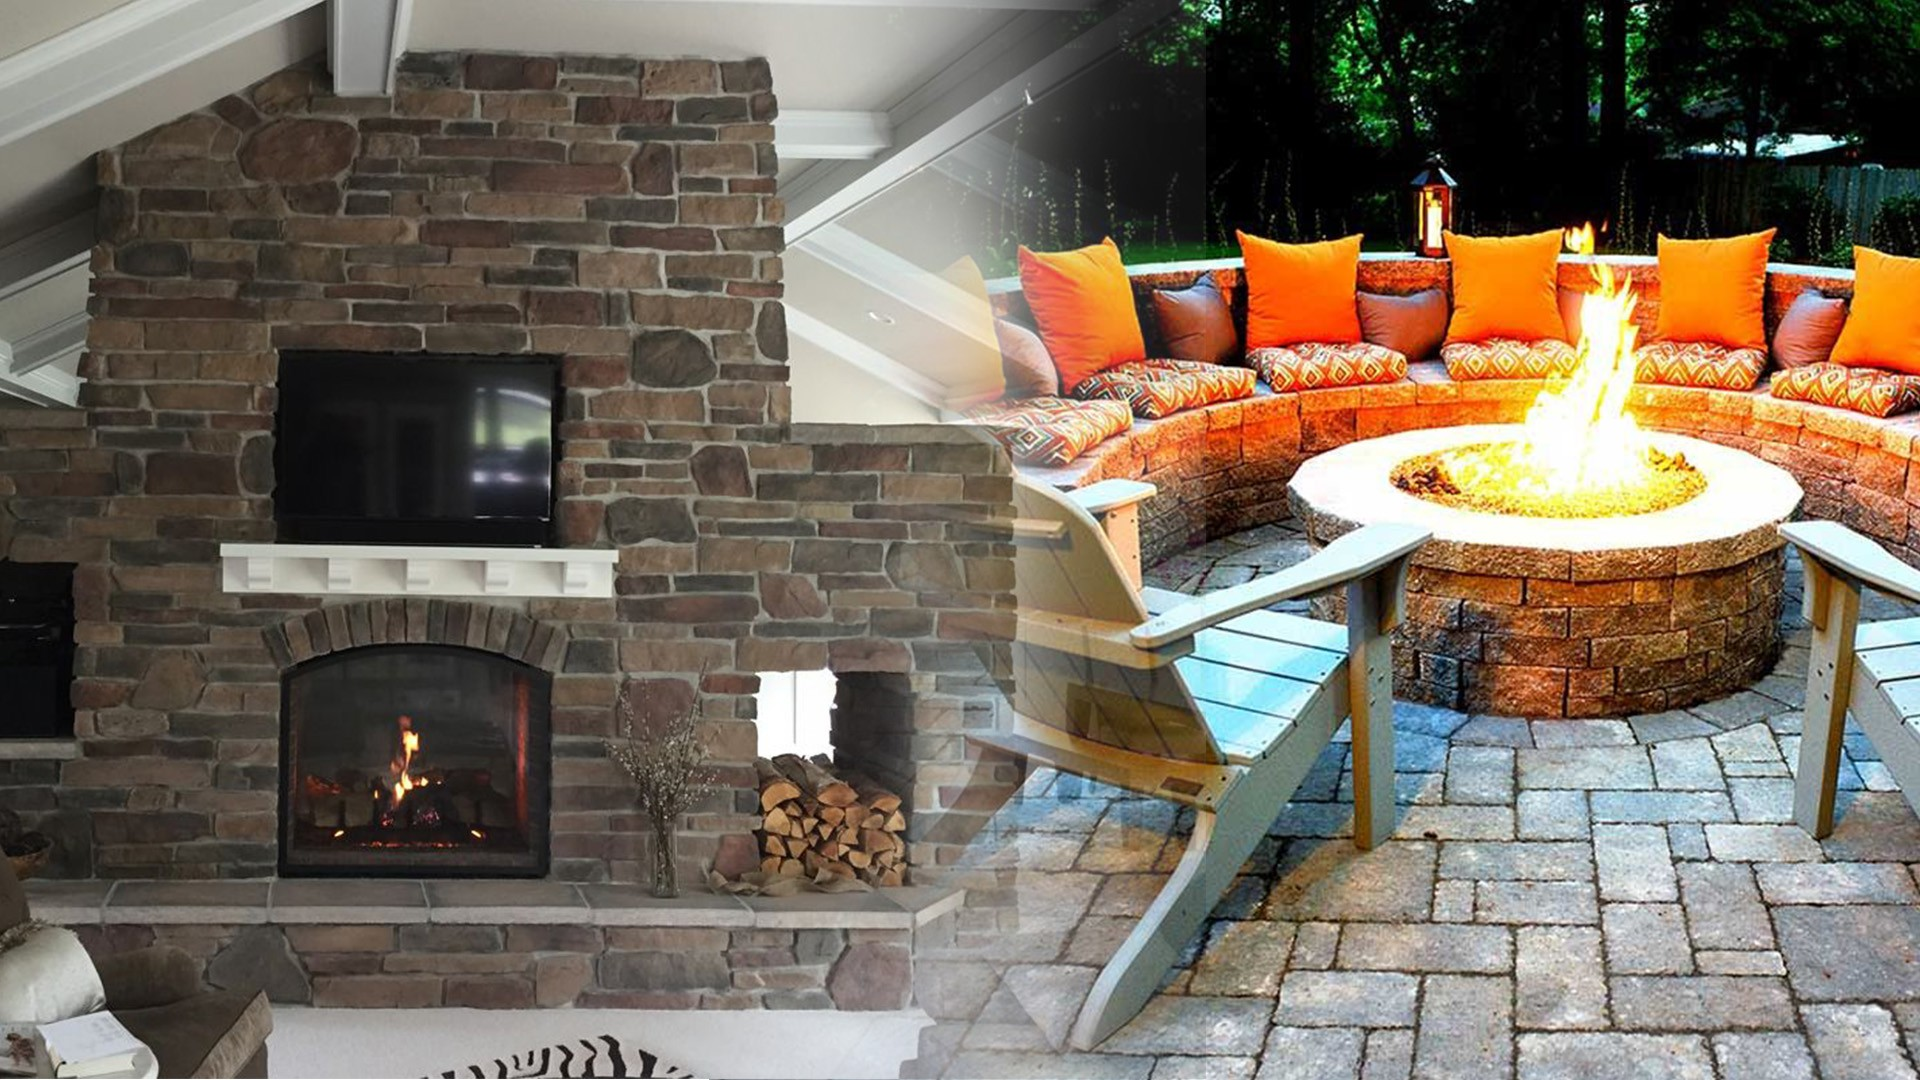 Outdoor Fireplaces & Fire Pits-Richardson TX Landscape Designs & Outdoor Living Areas-We offer Landscape Design, Outdoor Patios & Pergolas, Outdoor Living Spaces, Stonescapes, Residential & Commercial Landscaping, Irrigation Installation & Repairs, Drainage Systems, Landscape Lighting, Outdoor Living Spaces, Tree Service, Lawn Service, and more.